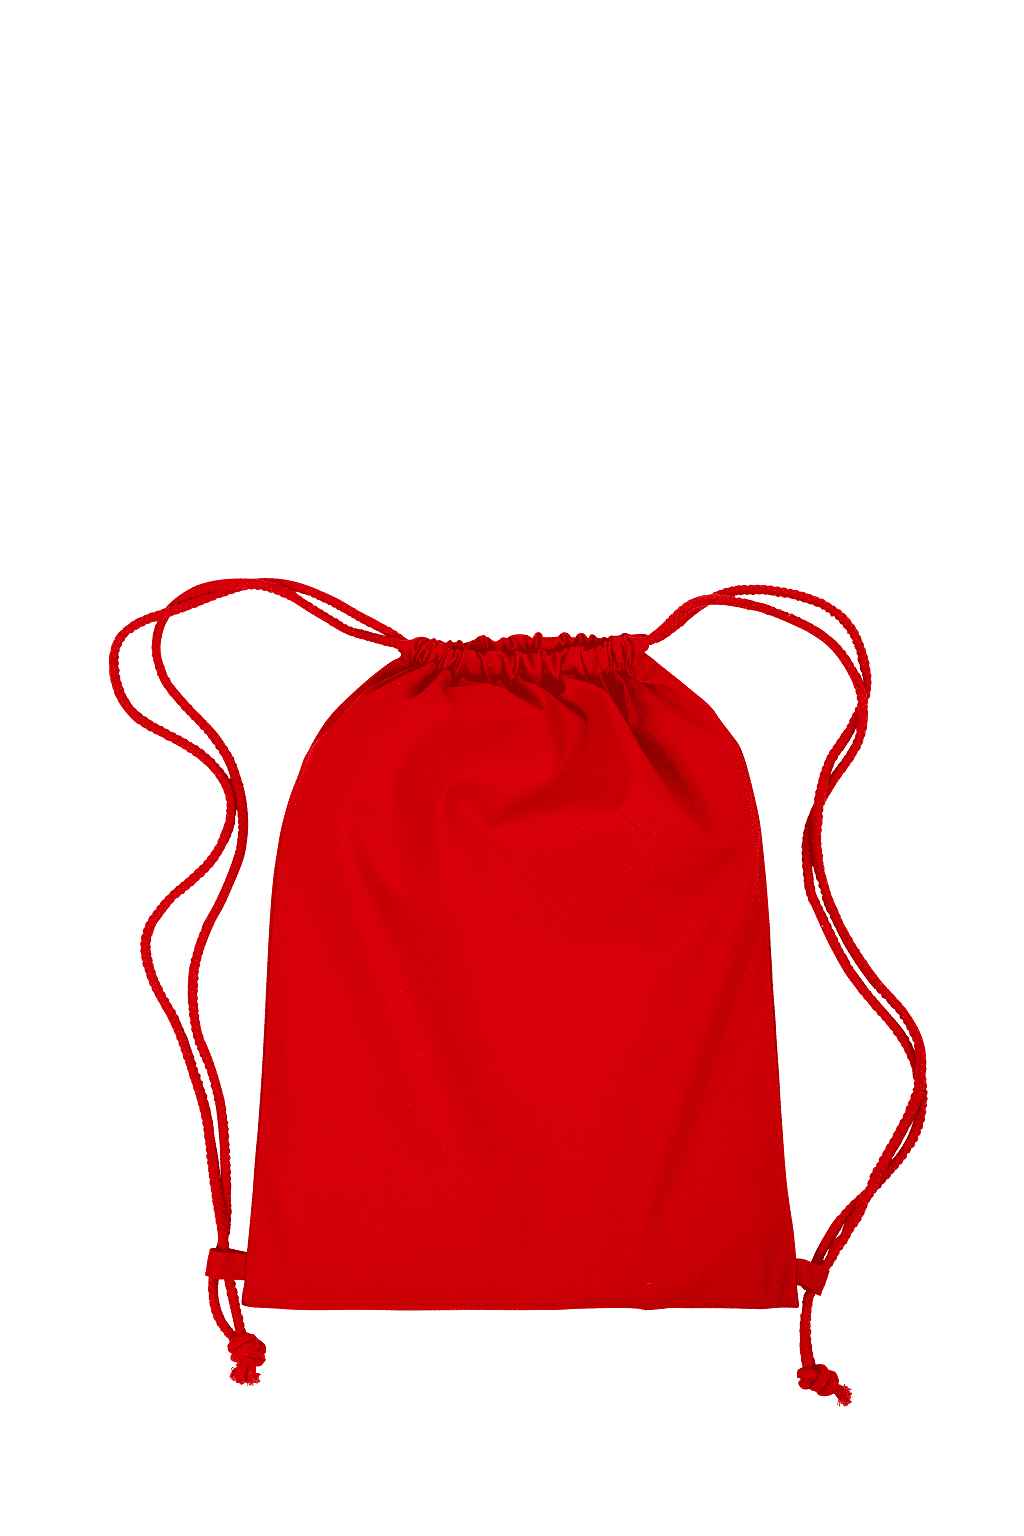 Roter Beutel